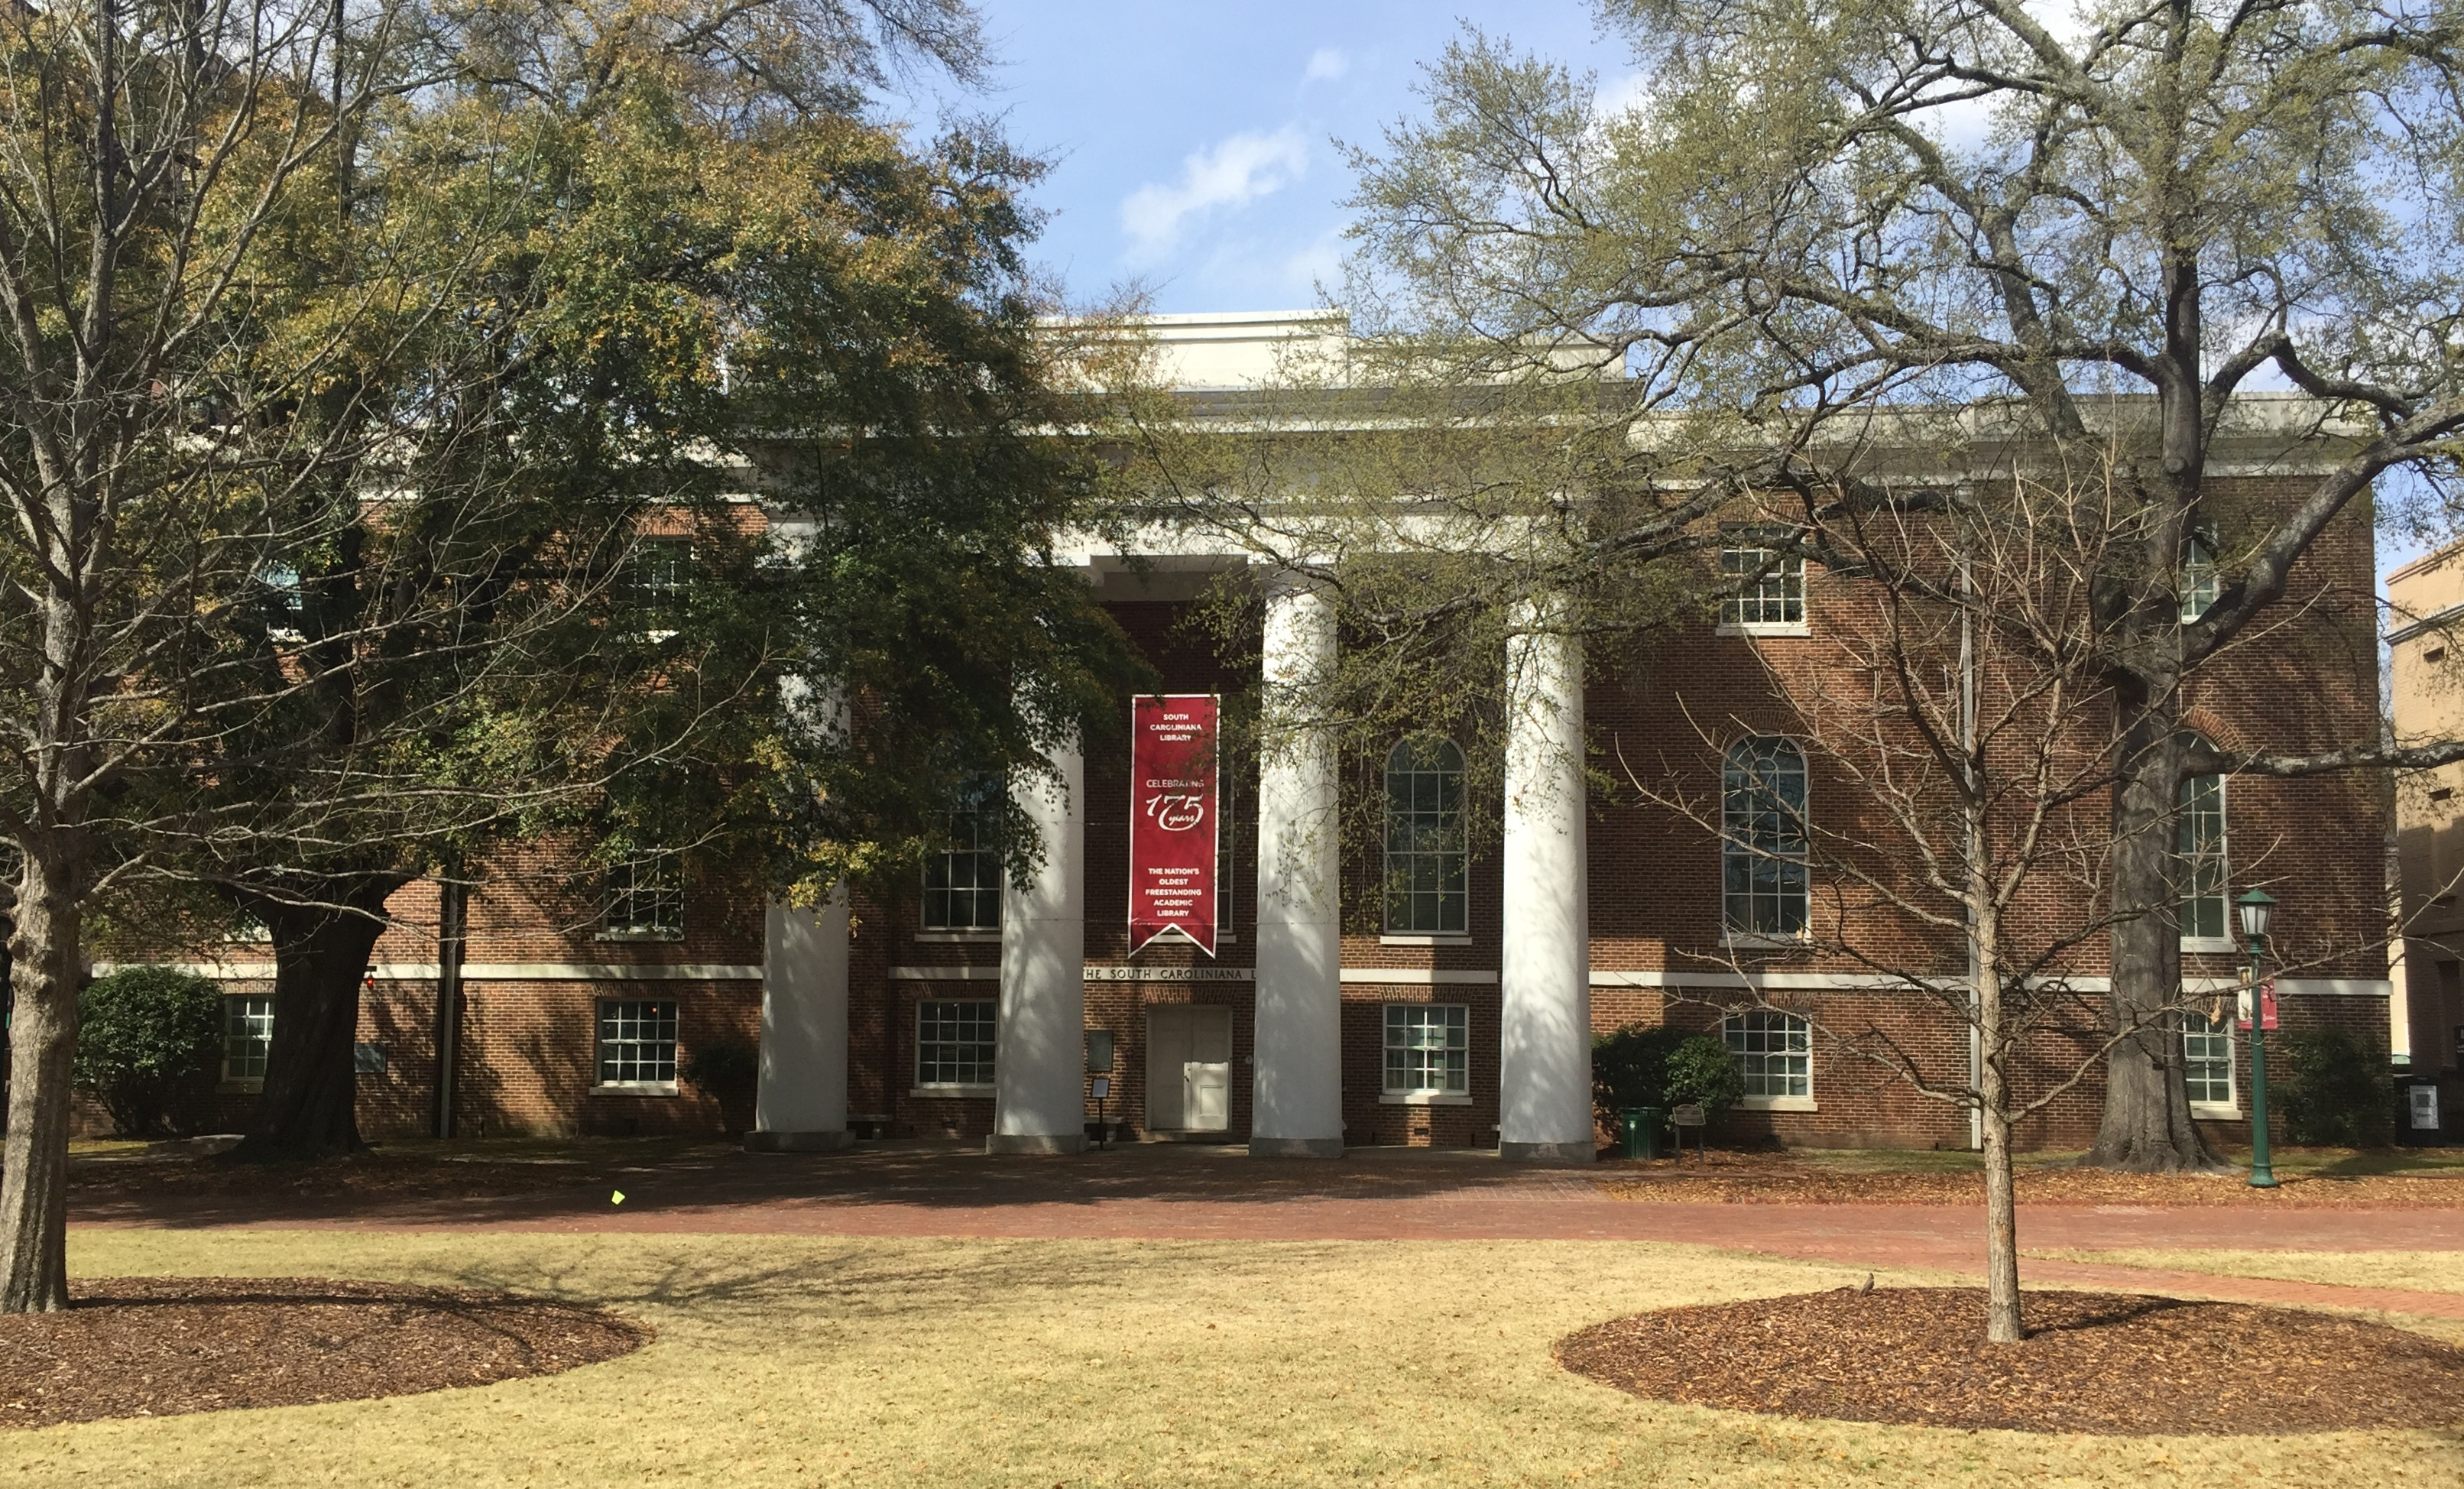 South Caroliniana Library, constructed in 1840, the nation's oldest freestanding academic library